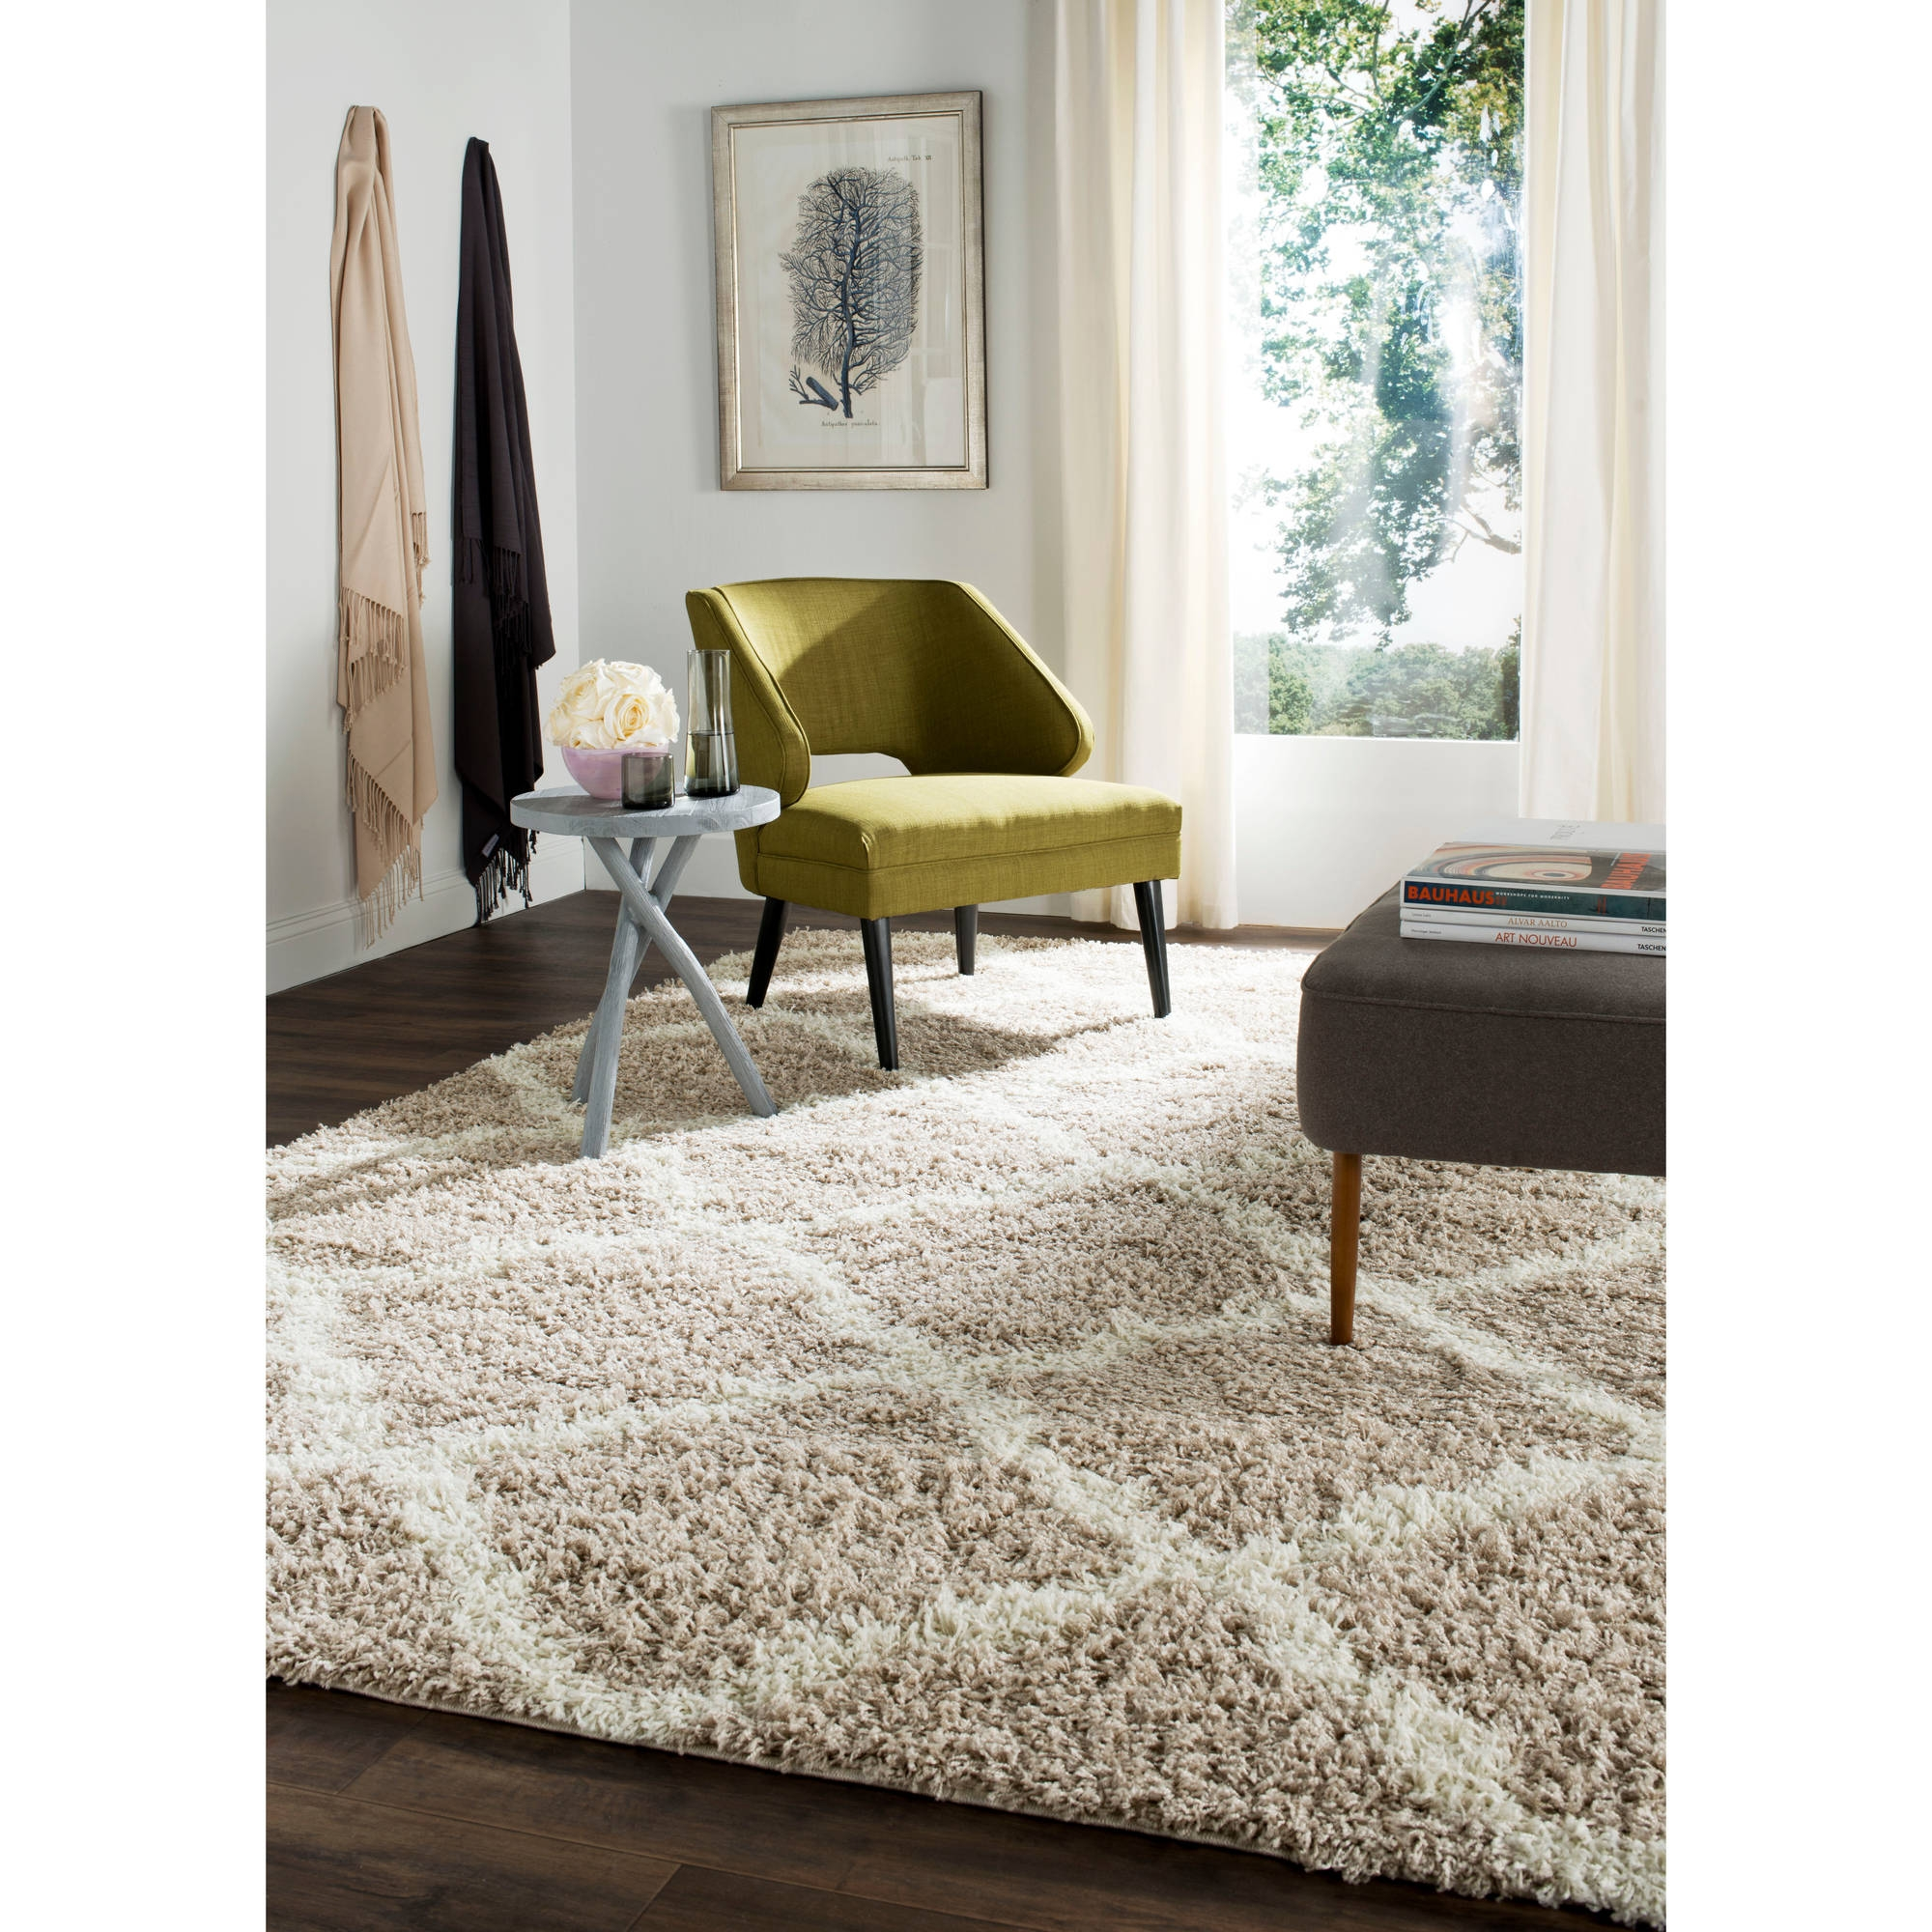 big area rugs cheap large area rugs for sale cheap - room area IYKQKAW